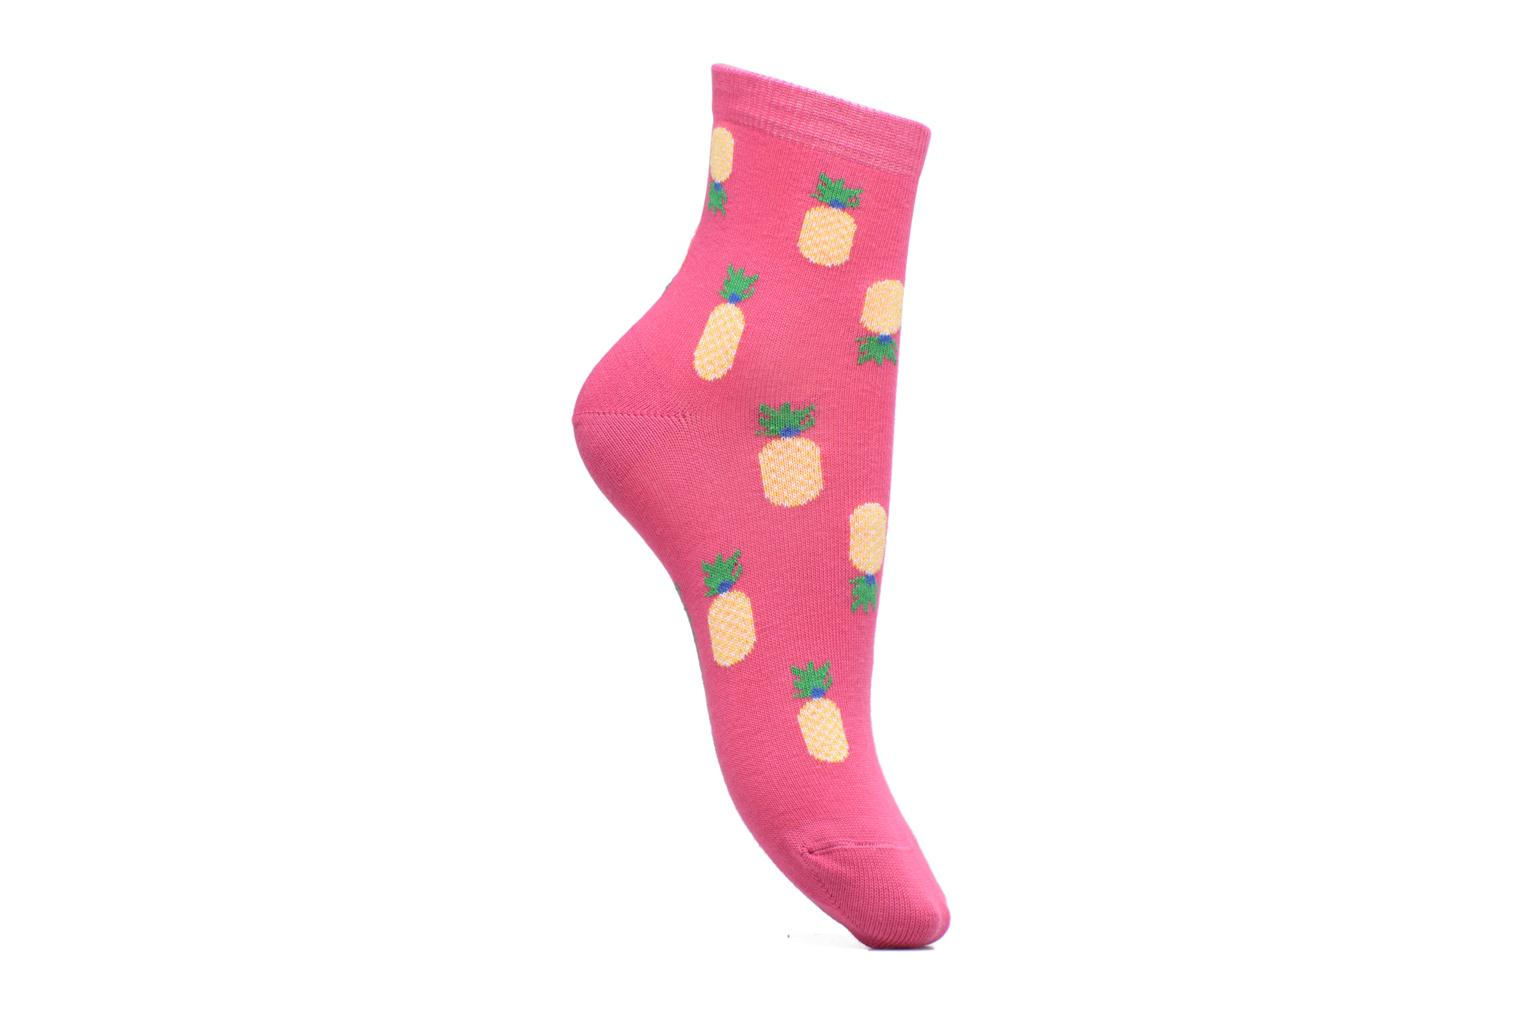 Chaussette Femme Ananas Coton Rose